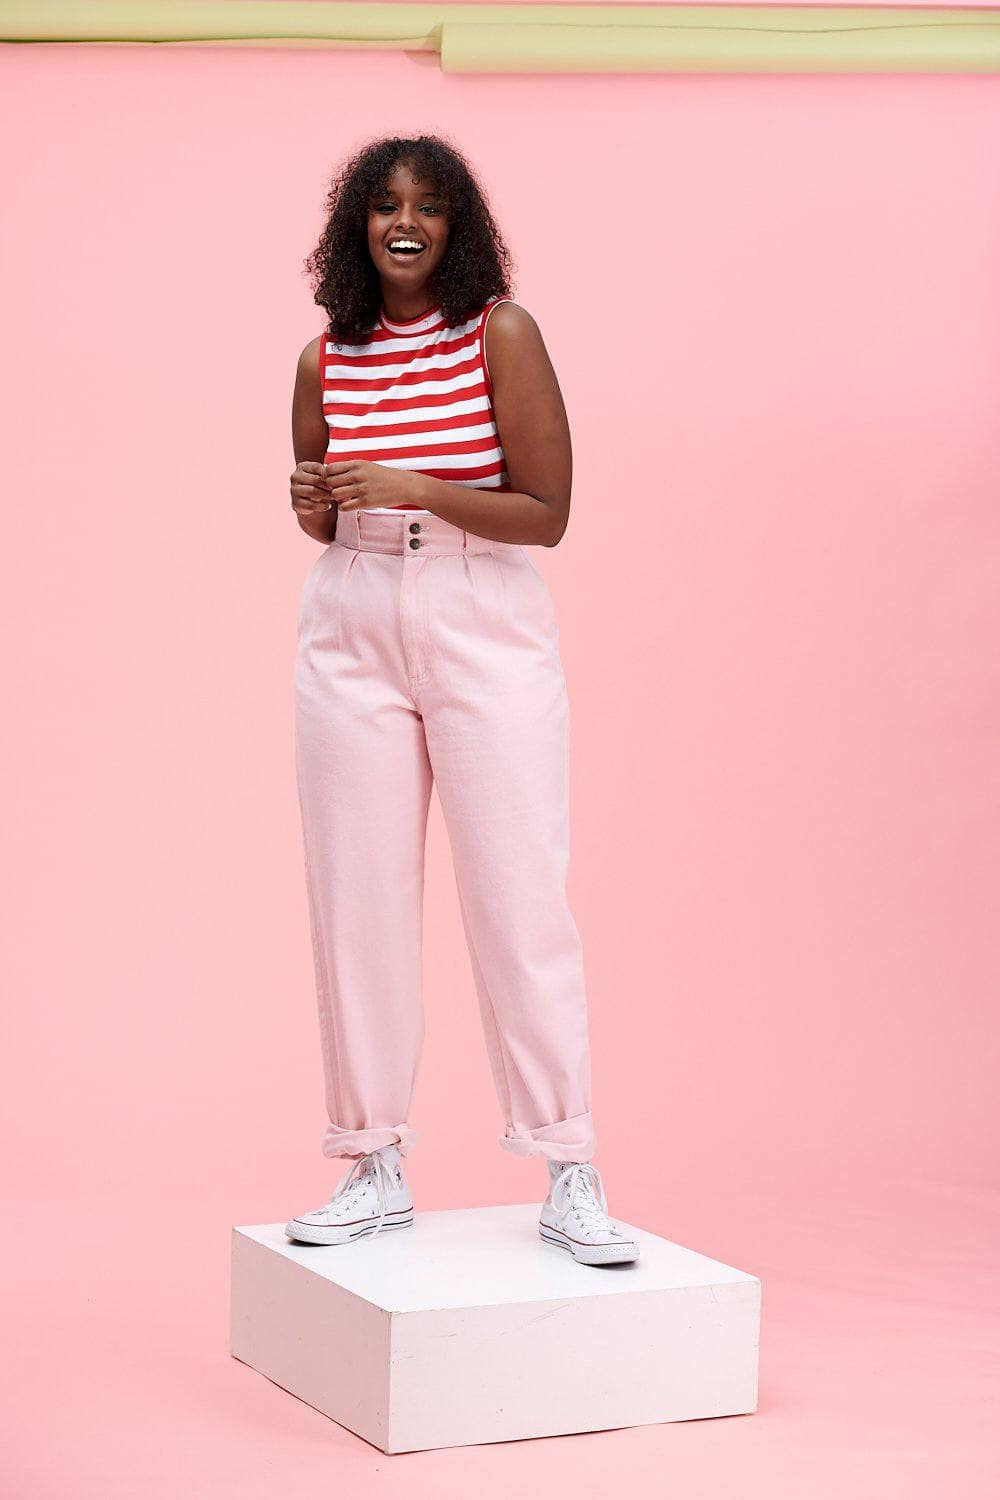 Lucy & Yak jeans 'Addison' High Waisted Organic Cotton Twill Jeans in Pink